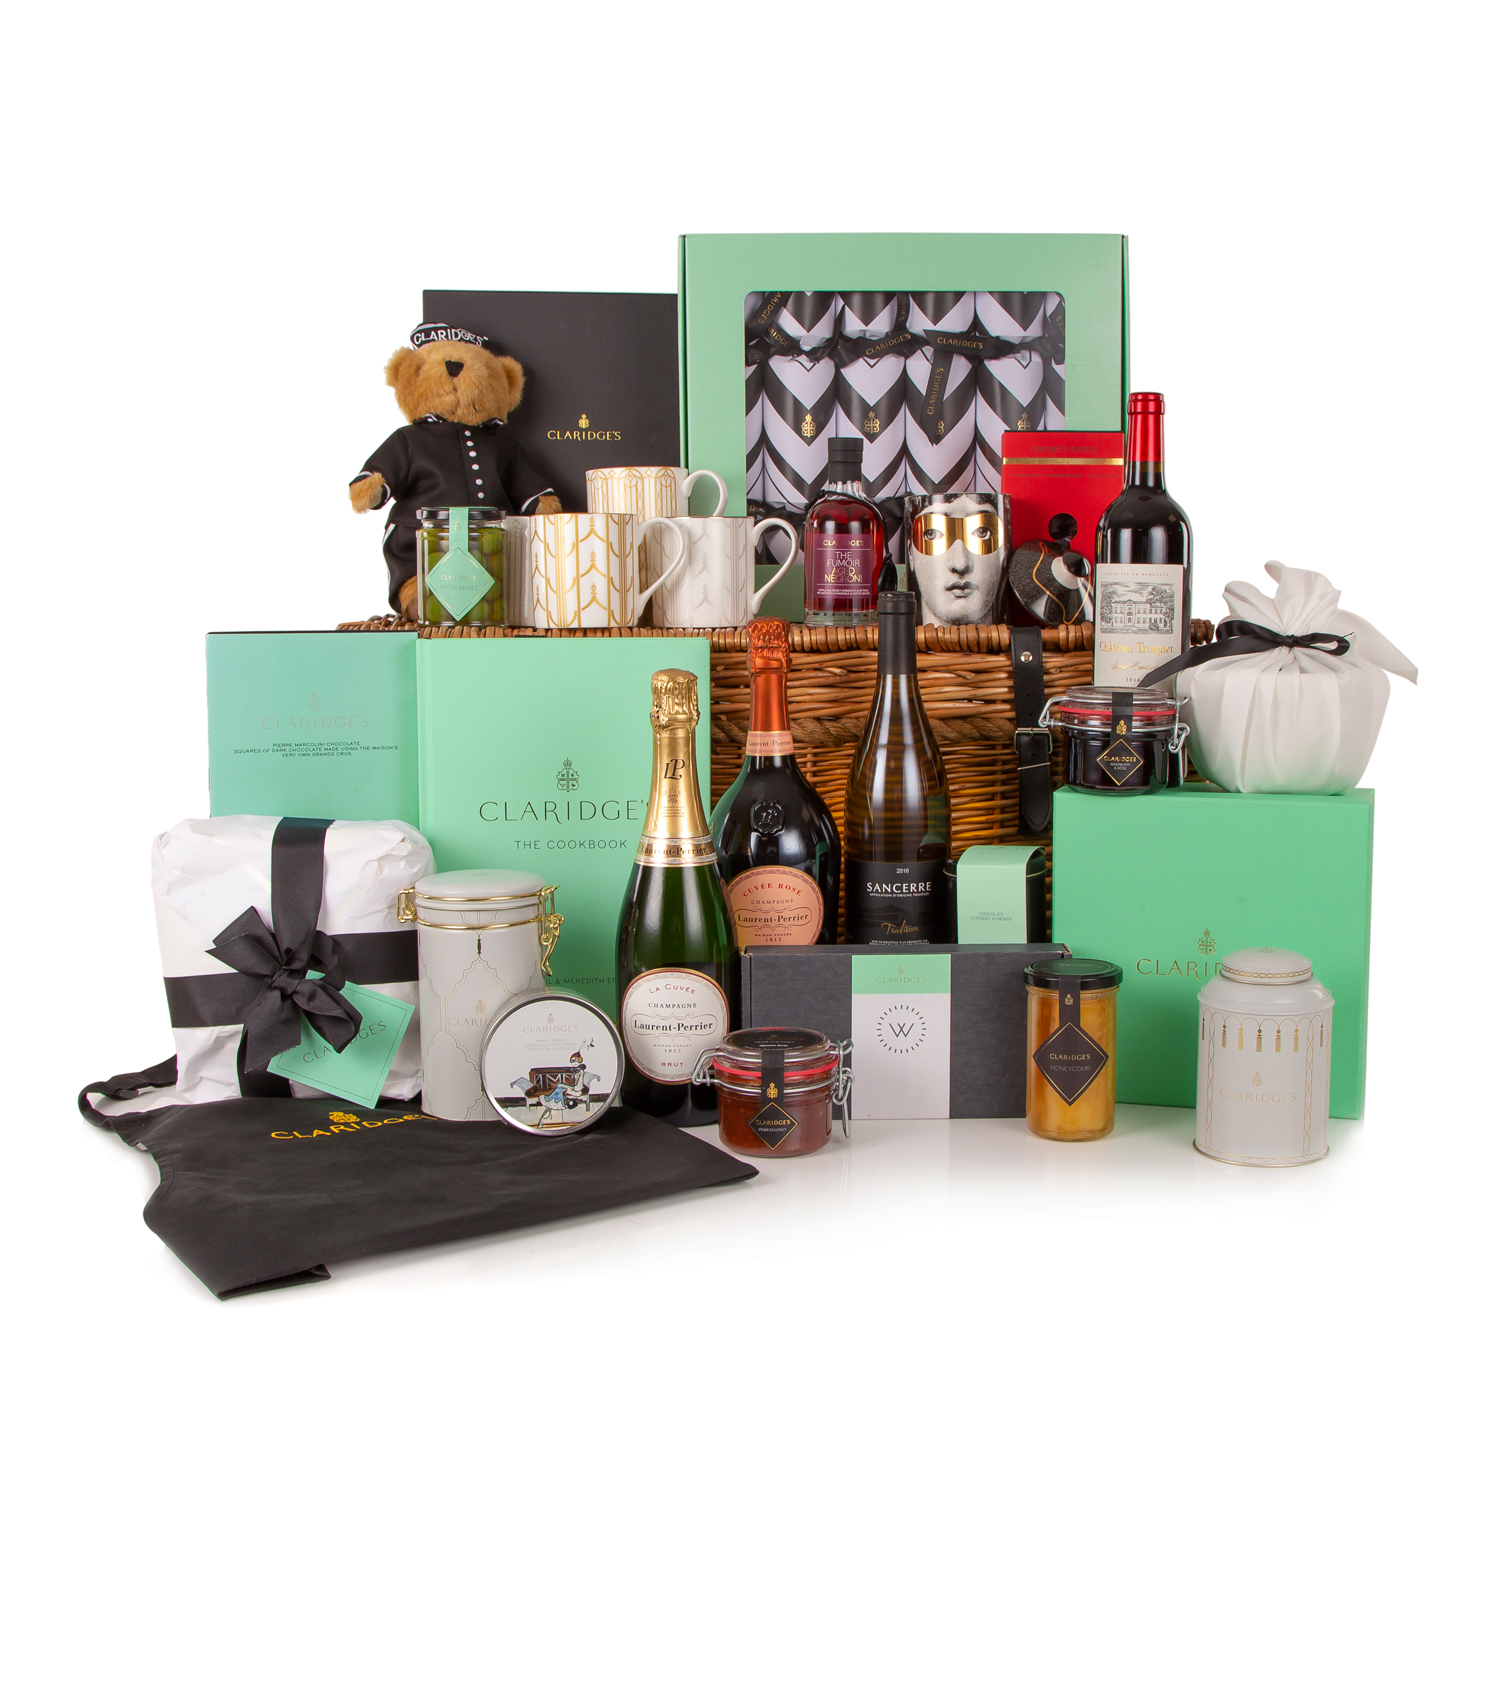 Claridges hamper